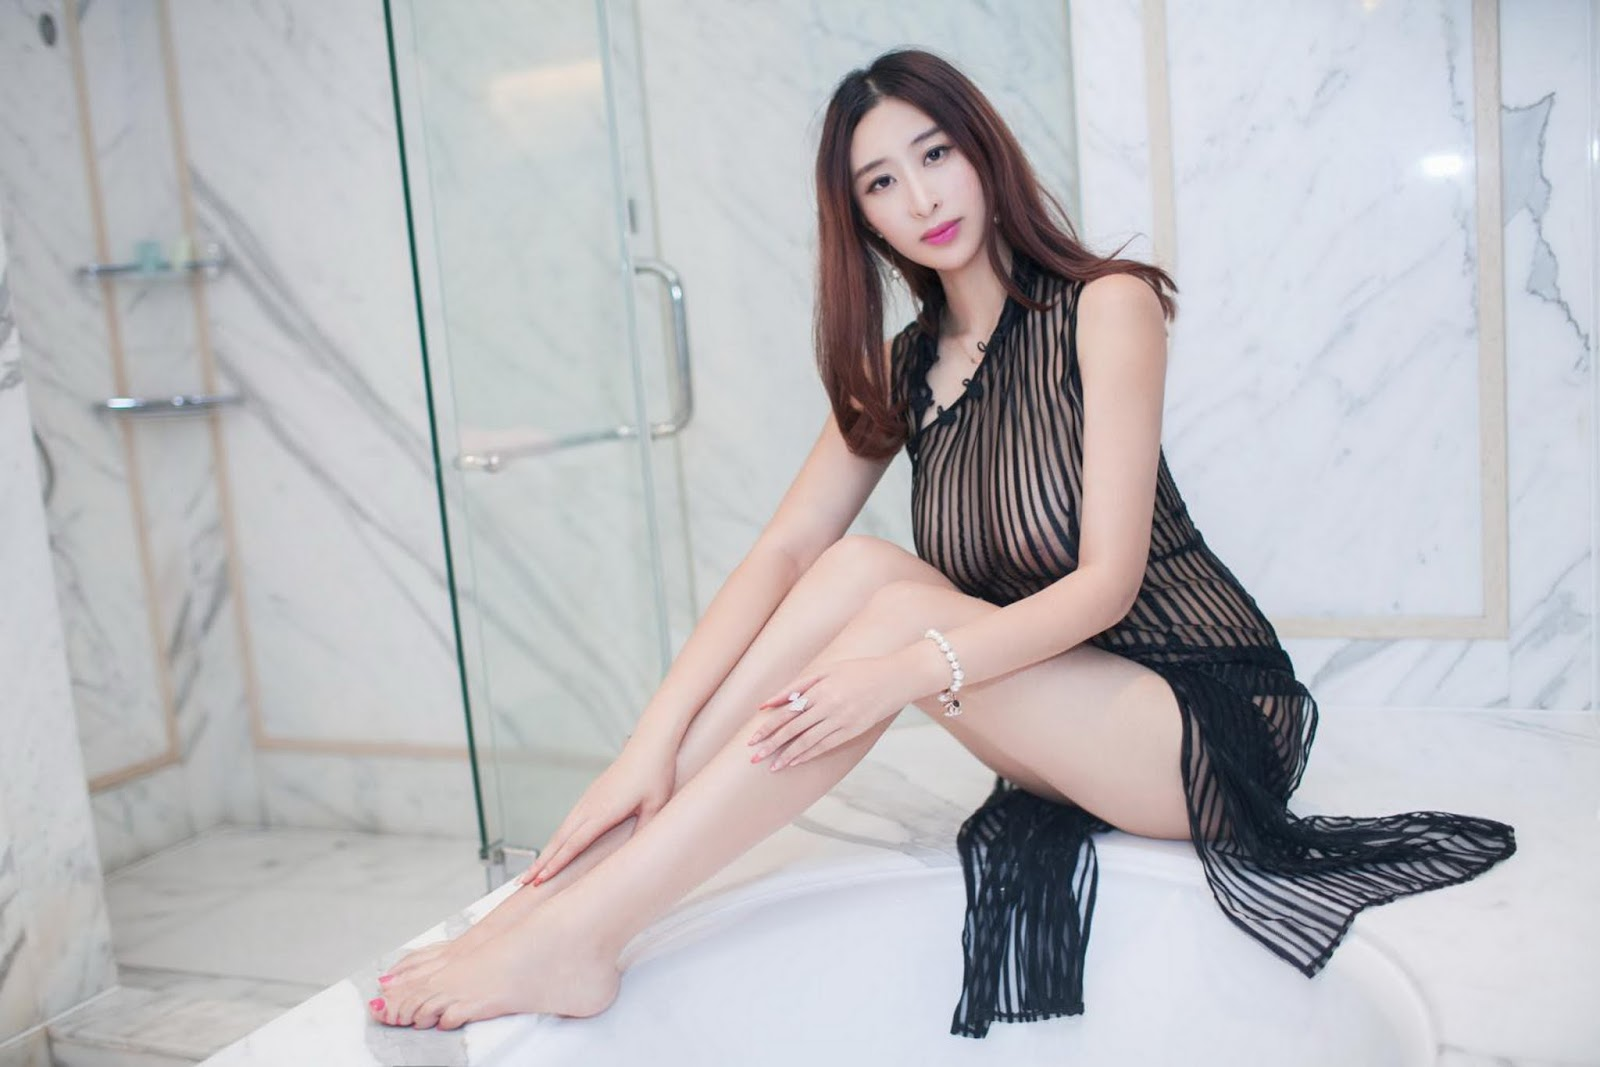 22 - Lake Model Sexy TUIGIRL NO.52 Hot